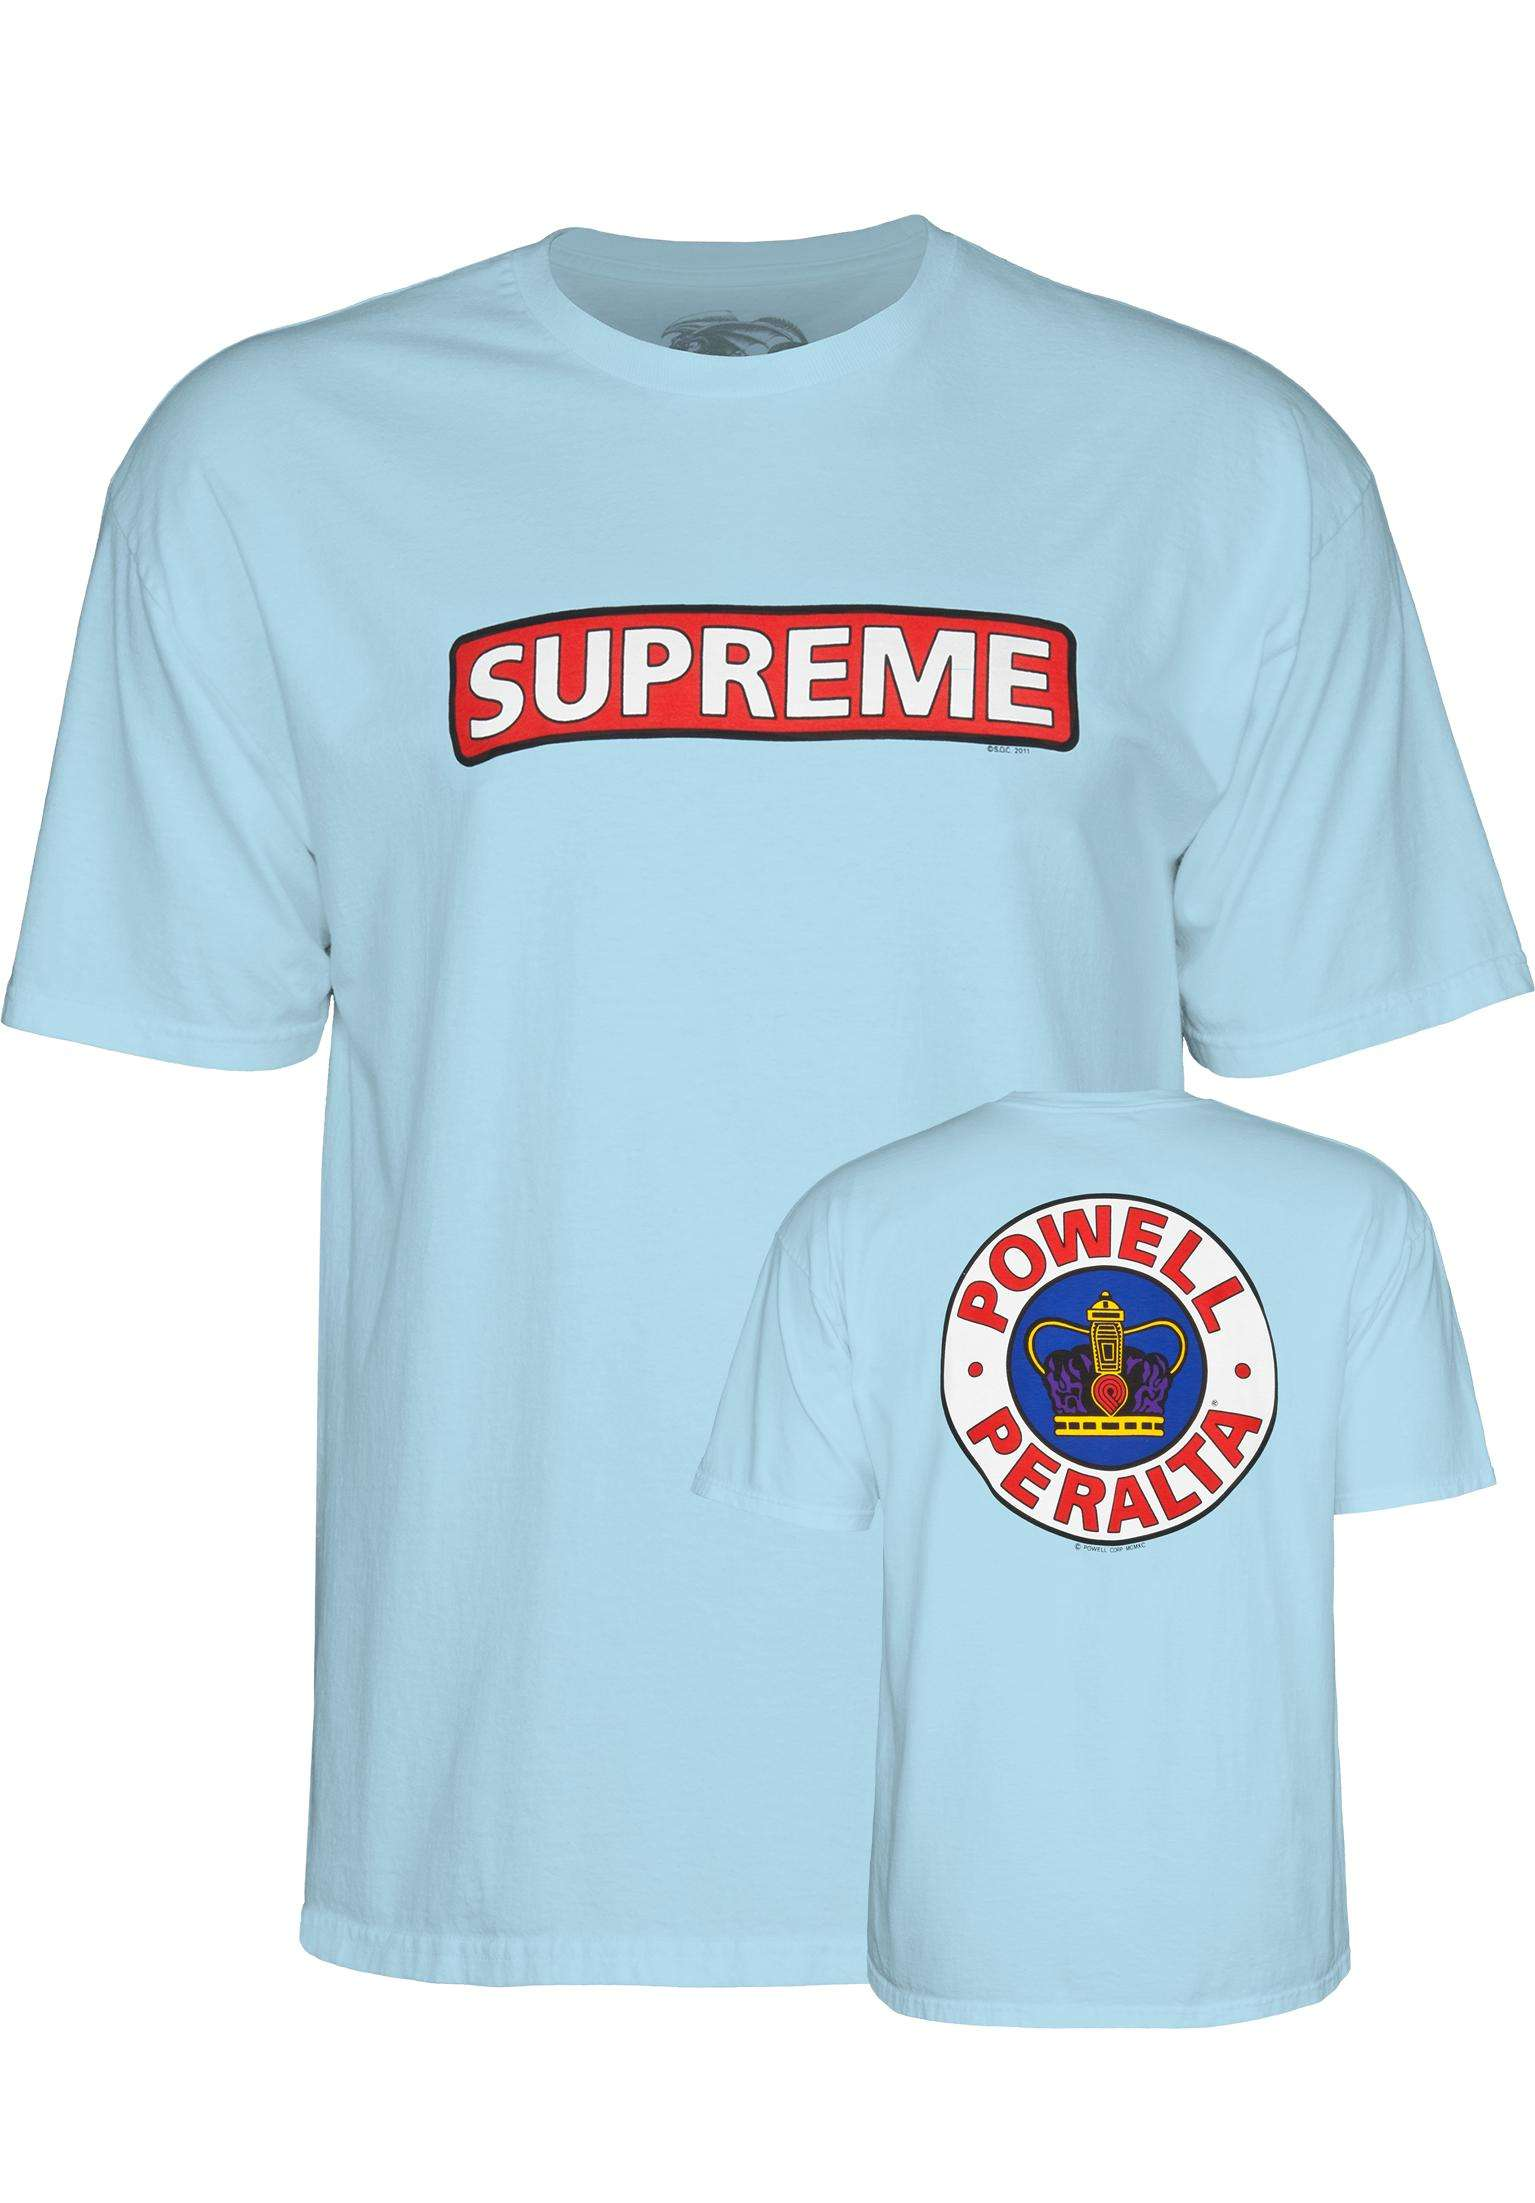 2f30ec24a737 Supreme Powell-Peralta T-Shirts in lightblue for Men